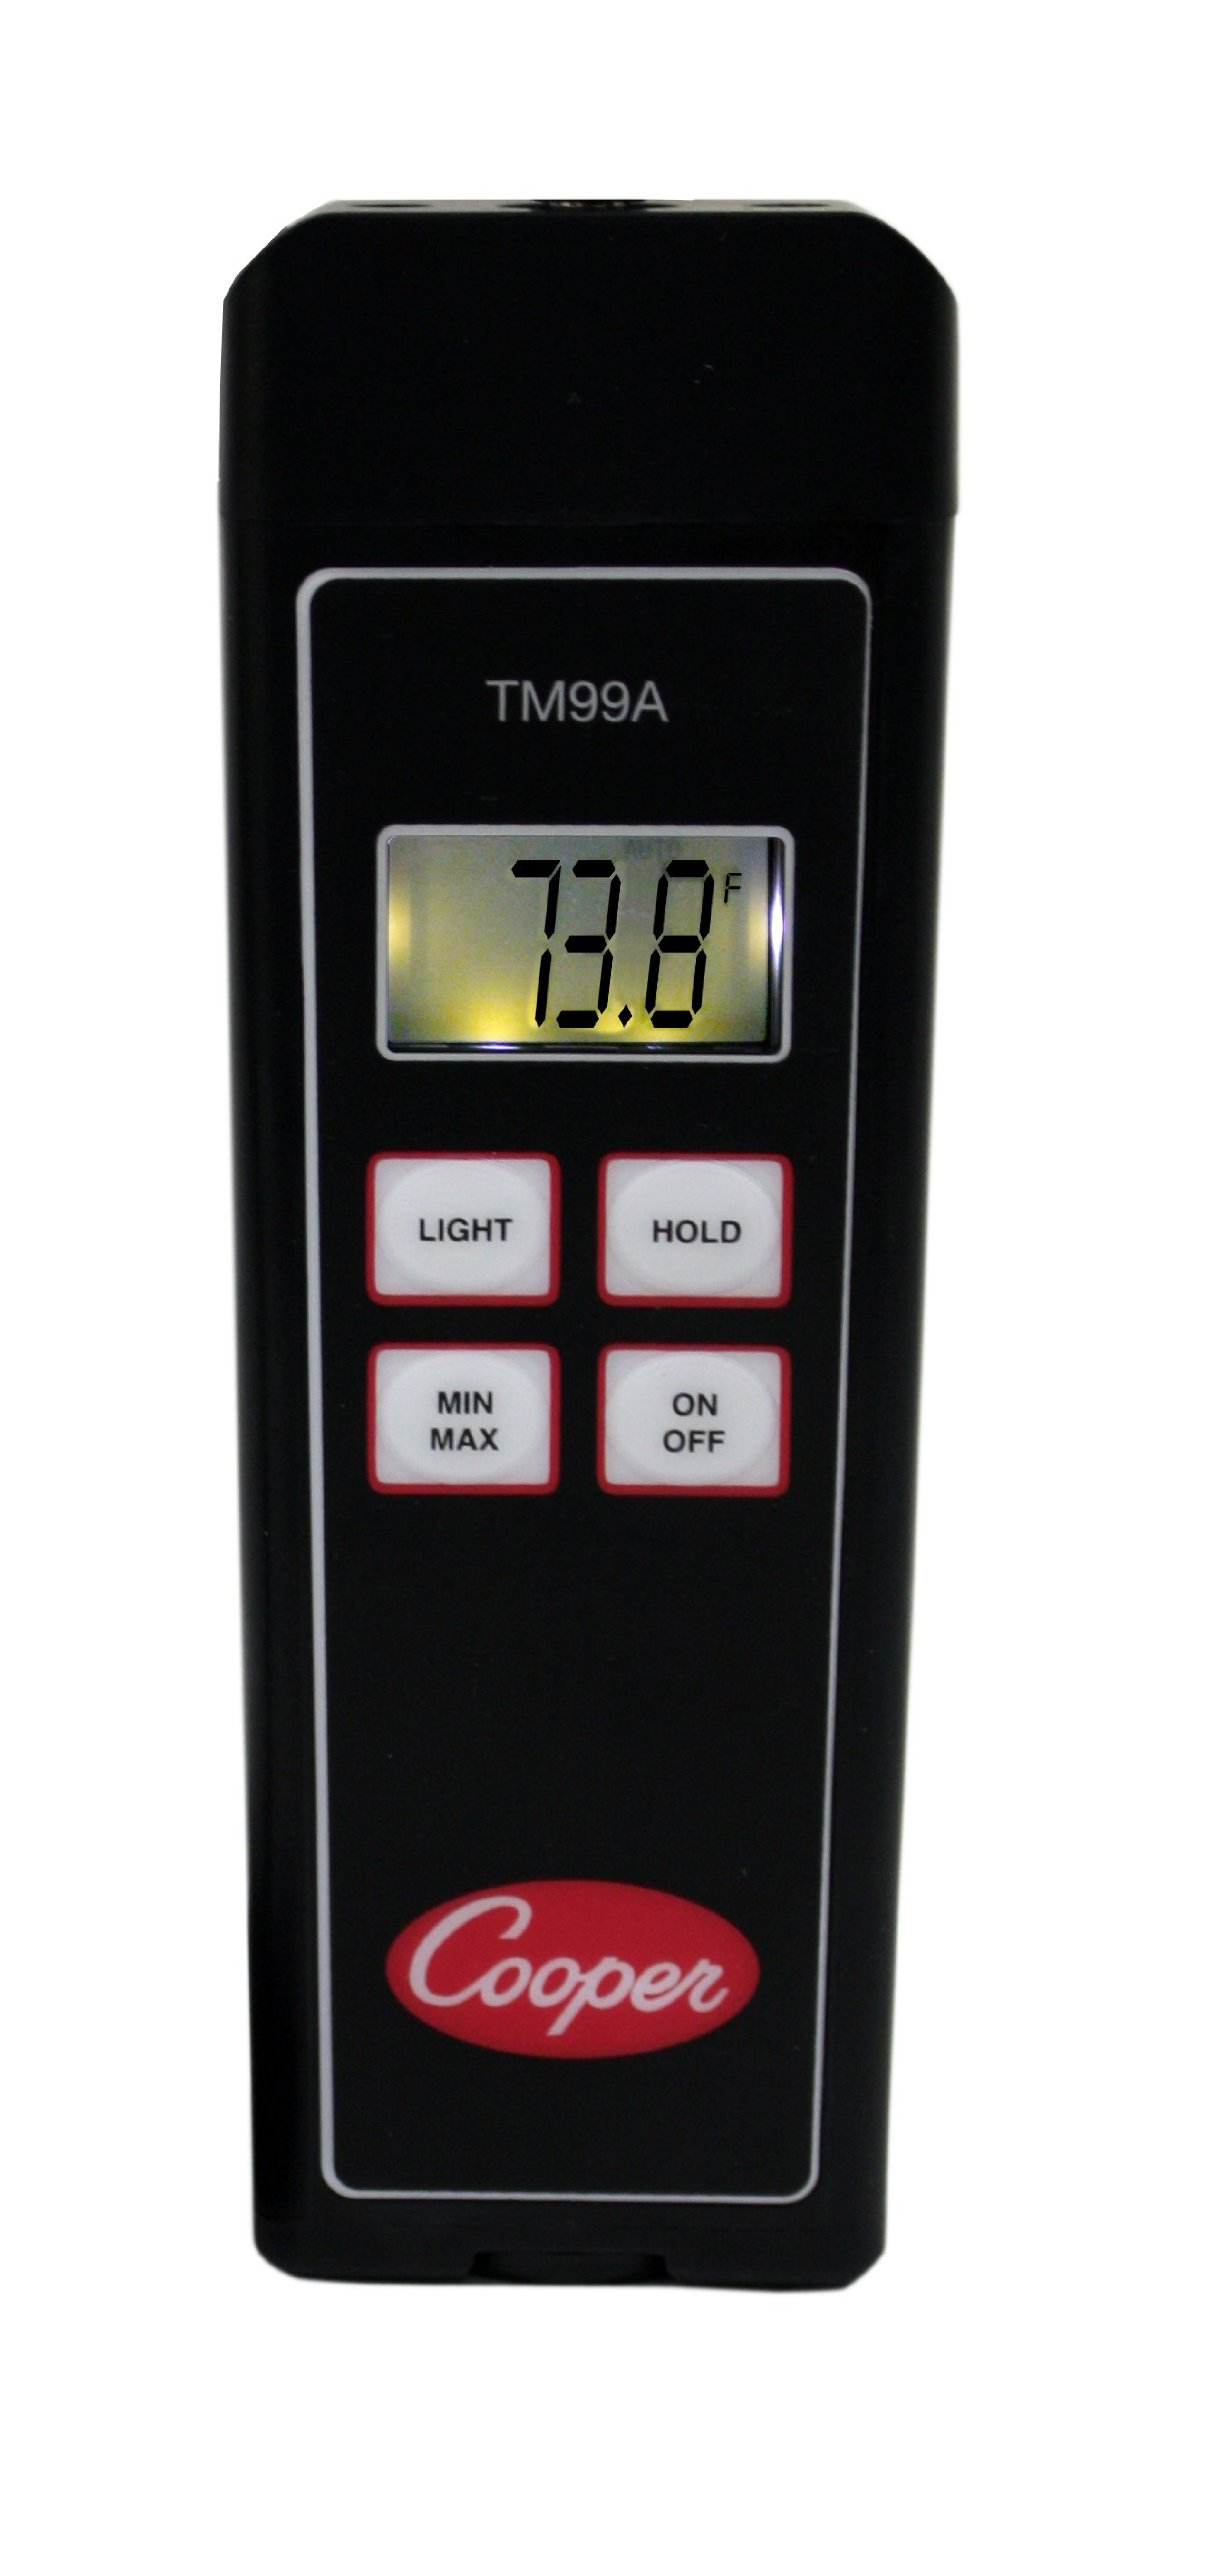 Cooper-Atkins TM99A-0 Thermistor Temperature Instrument Without Probe and with Pouch, -40°F to 302°F Temperature Range